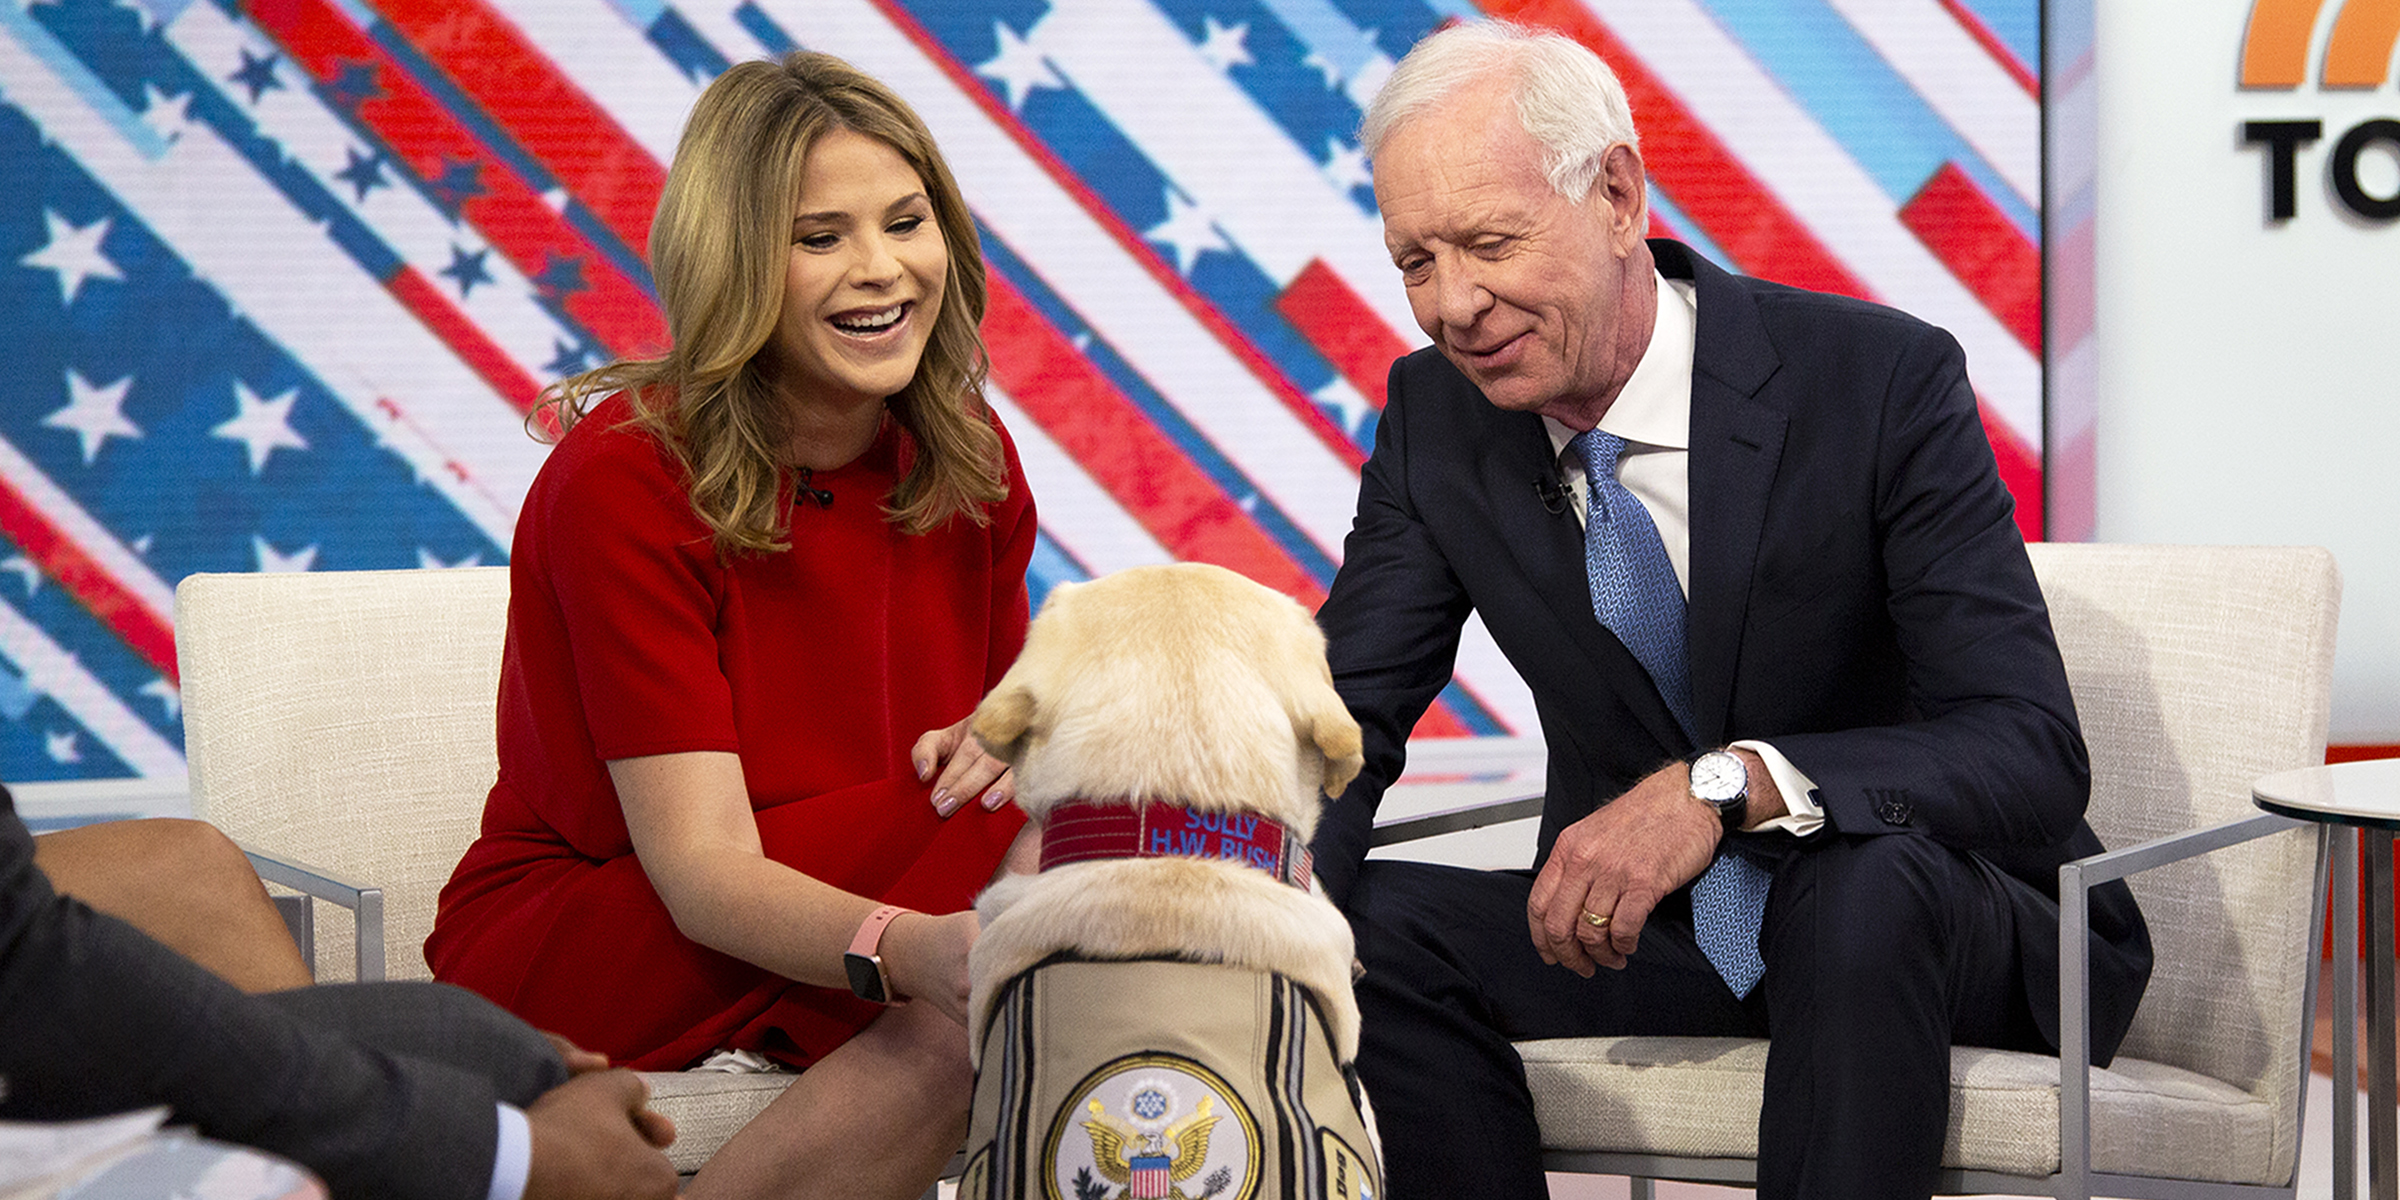 Sully meets Sully! George H.W. Bush's service dog meets hero pilot Chesley Sullenberger